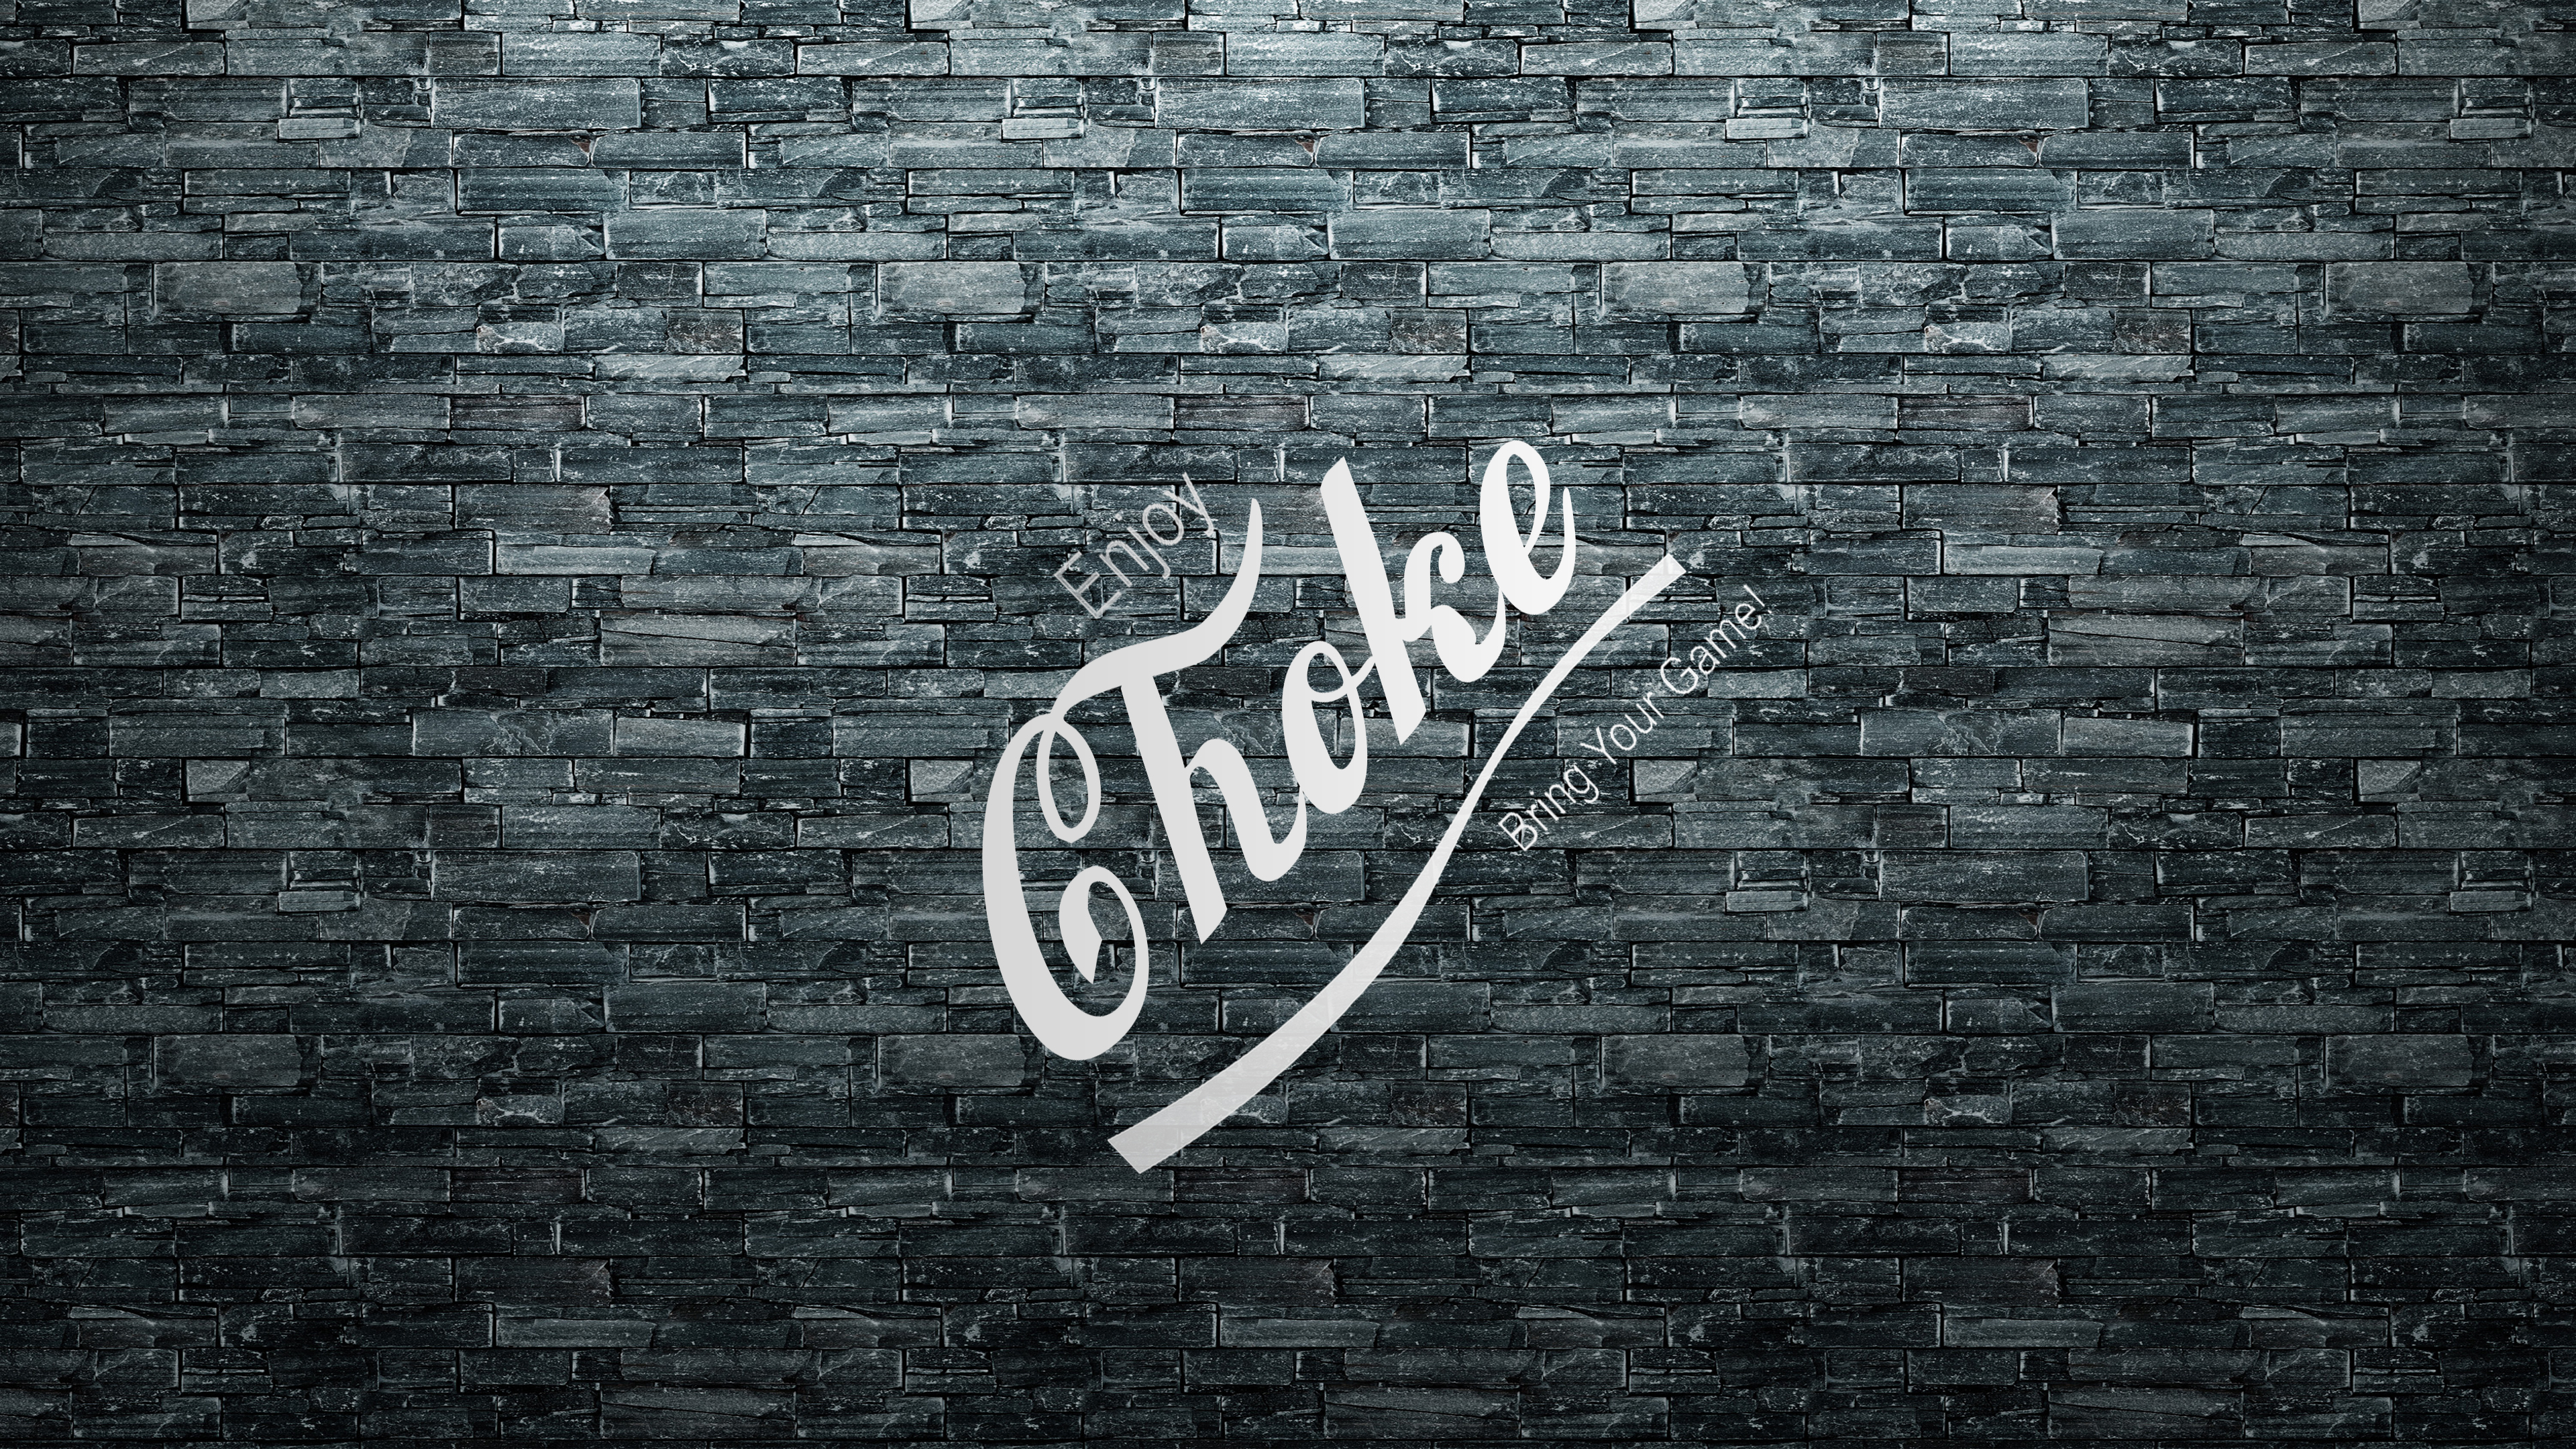 Jiu Jitsu Enjoy Choke Gray Stone Background Angled